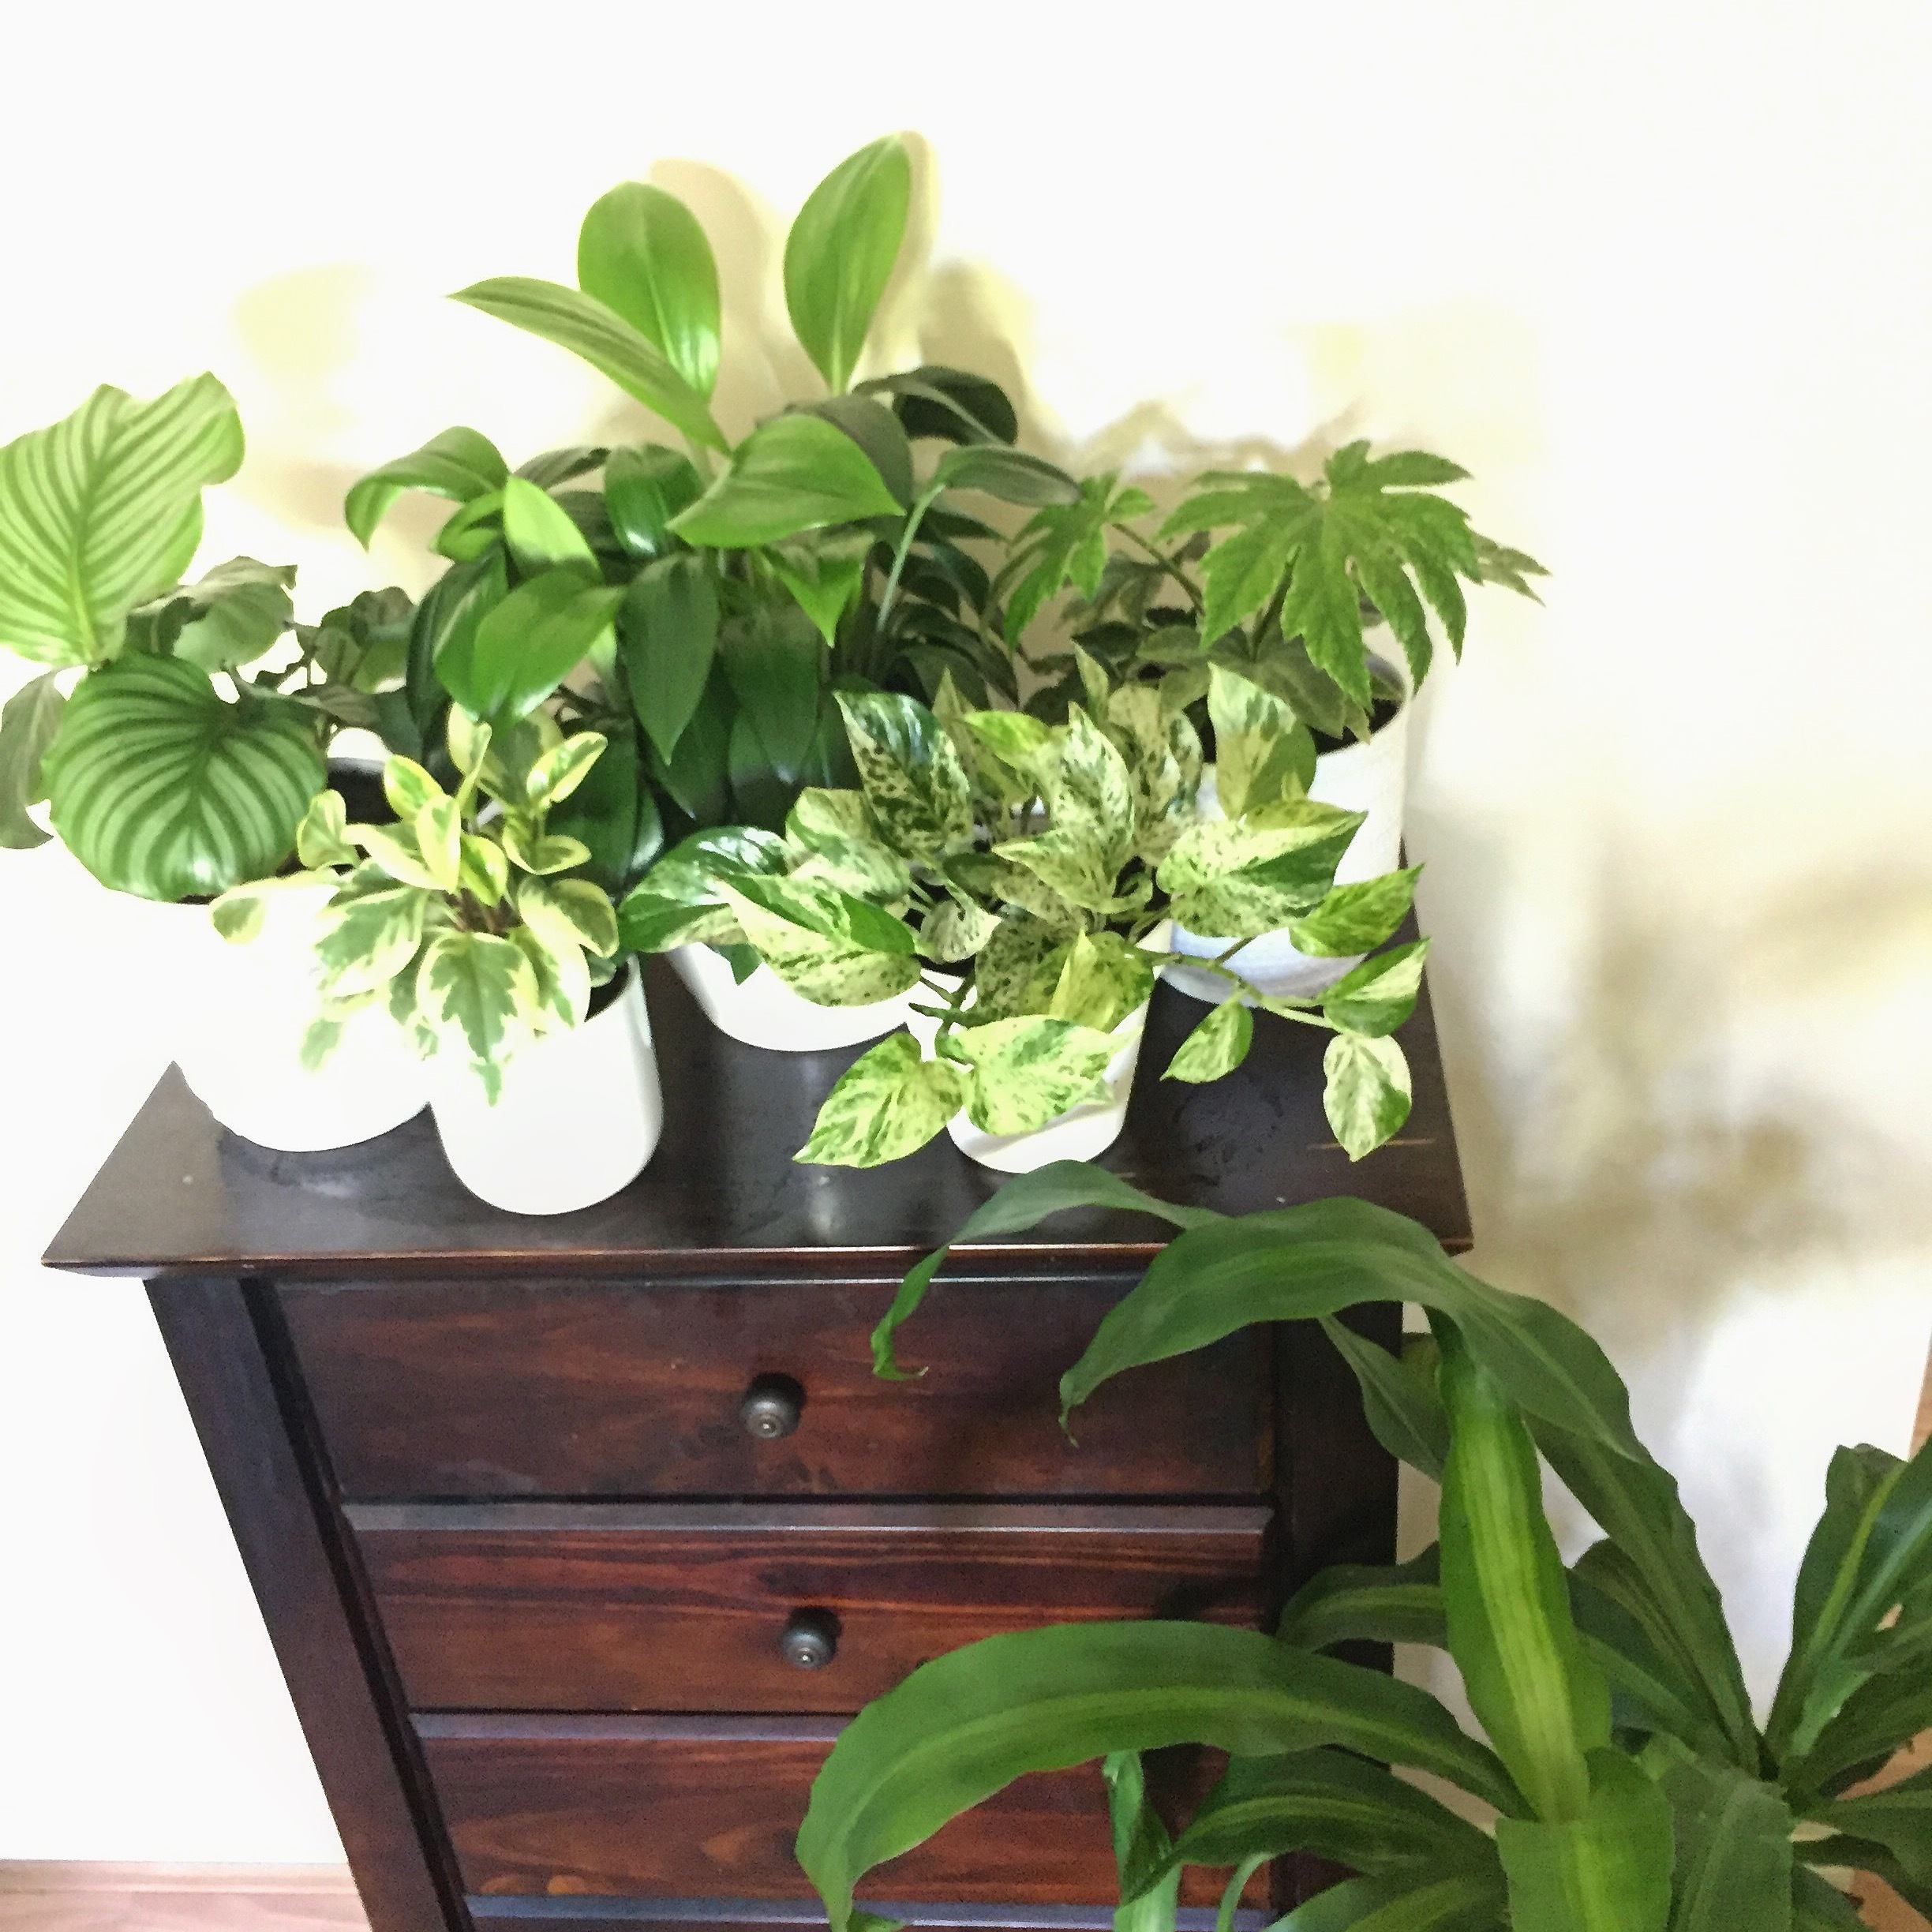 Group houseplants close together to keep them warm